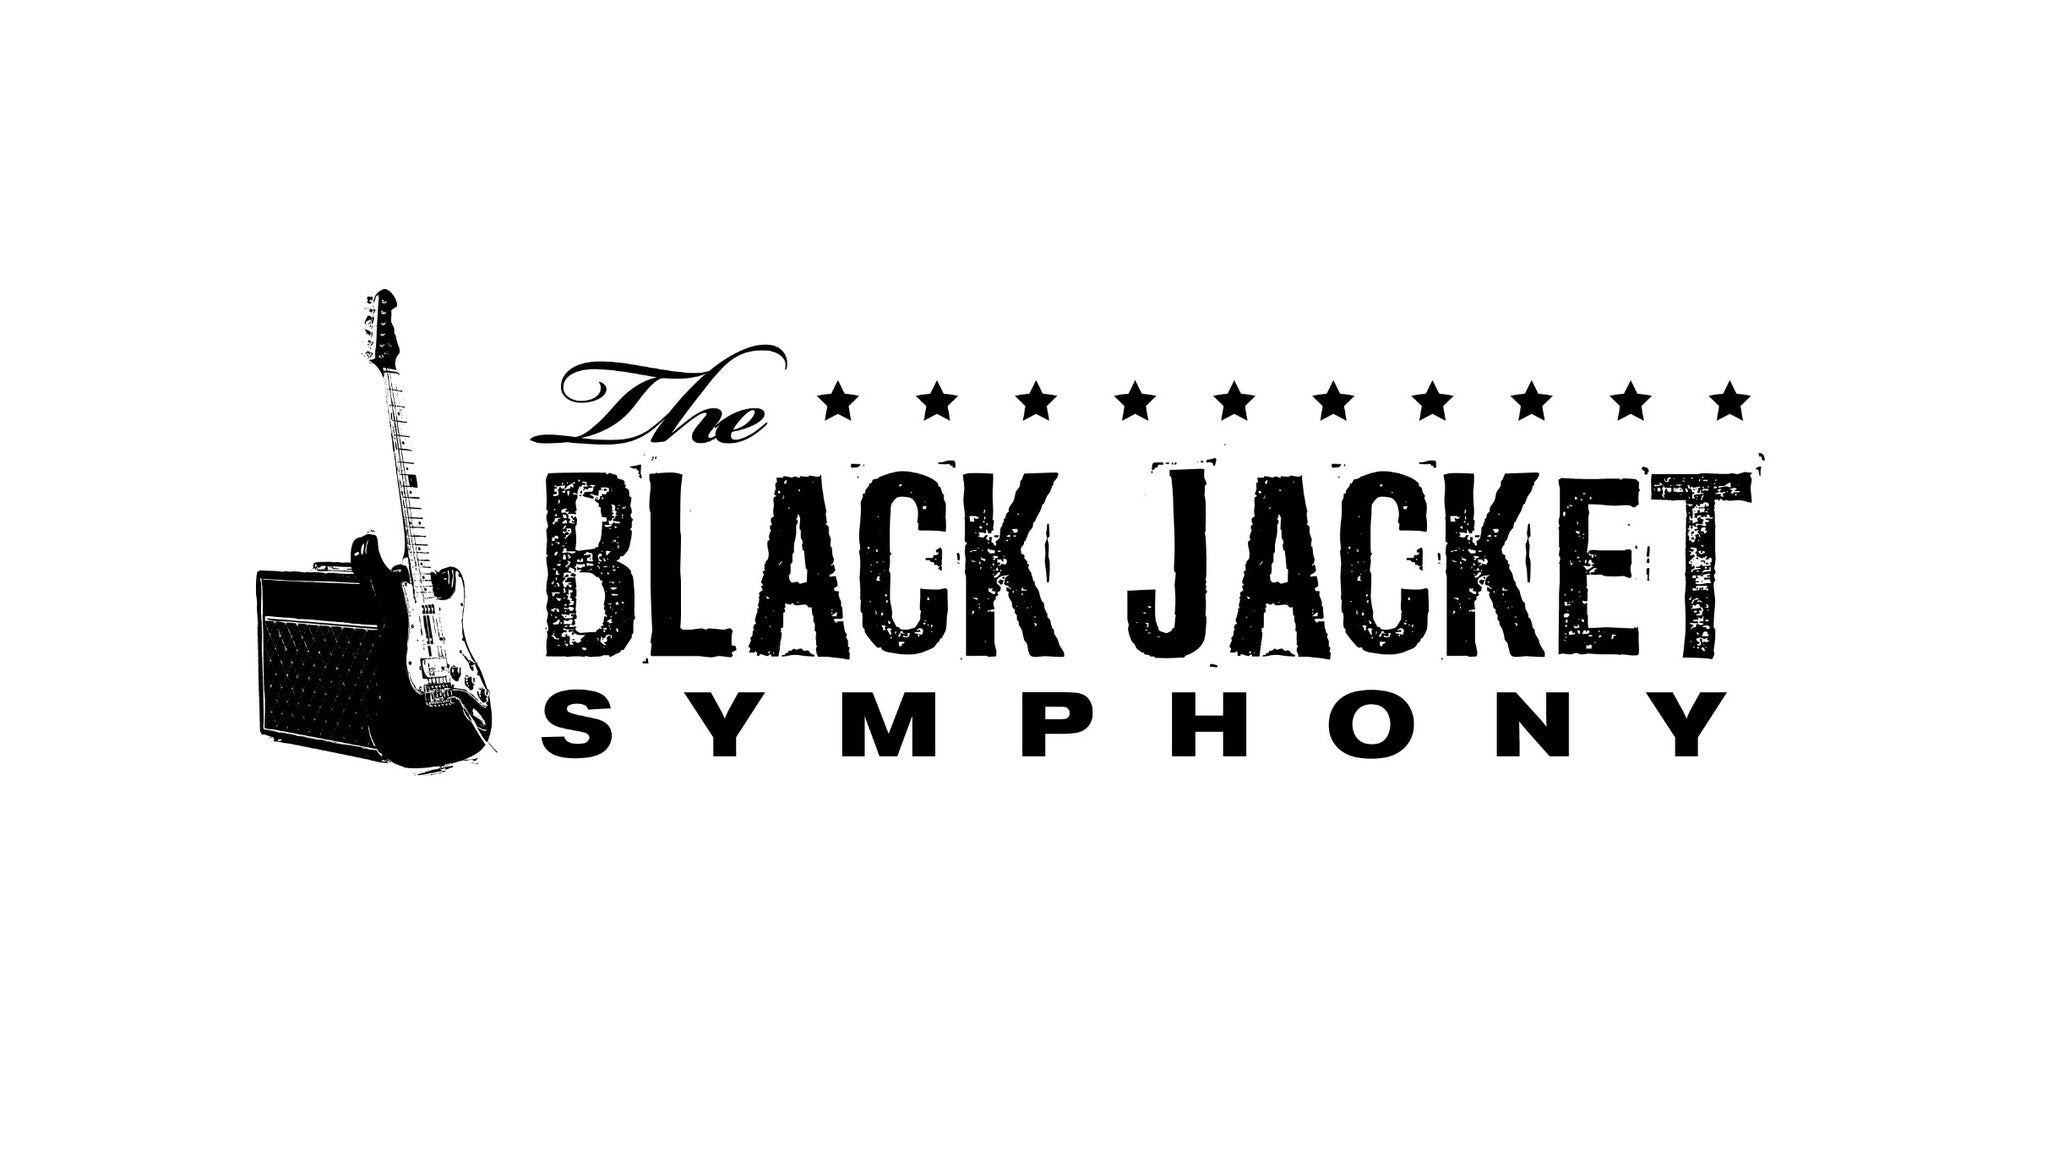 Black Jacket Symphony Presents The Beatles White Album presale password for early tickets in Birmingham